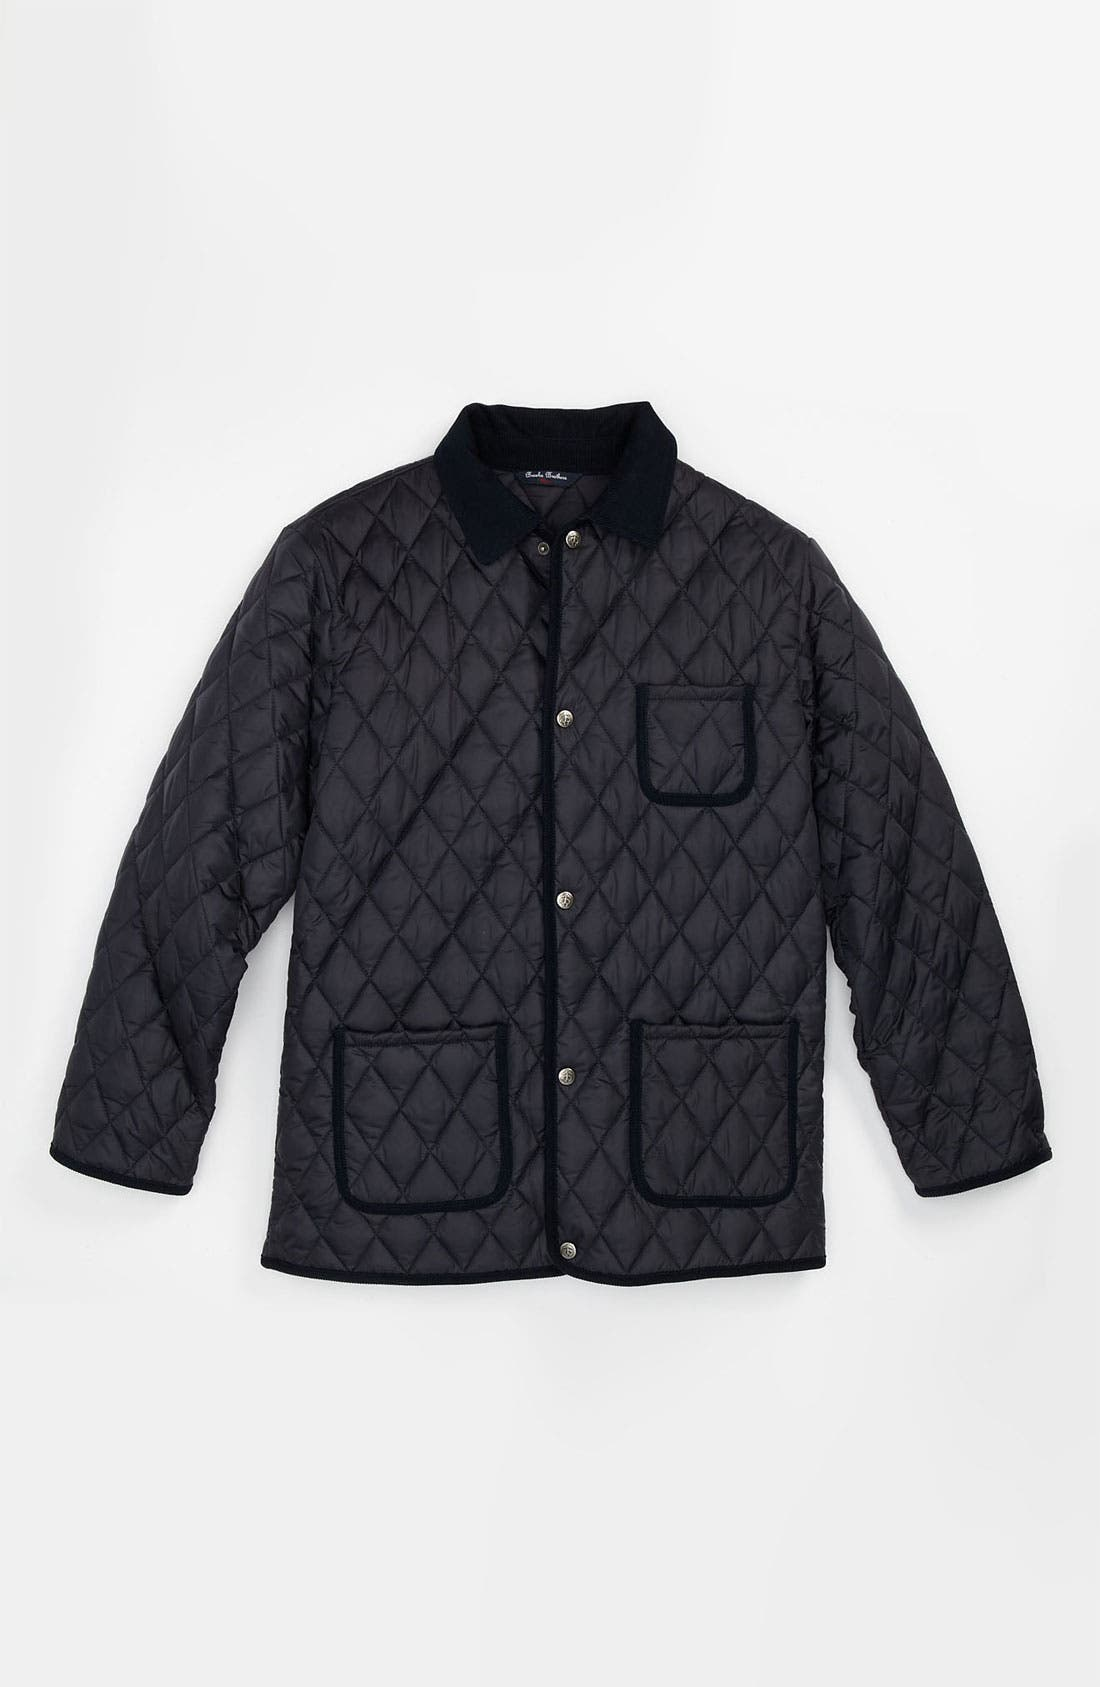 Alternate Image 1 Selected - Brooks Brothers Quilted Jacket (Big Boys)